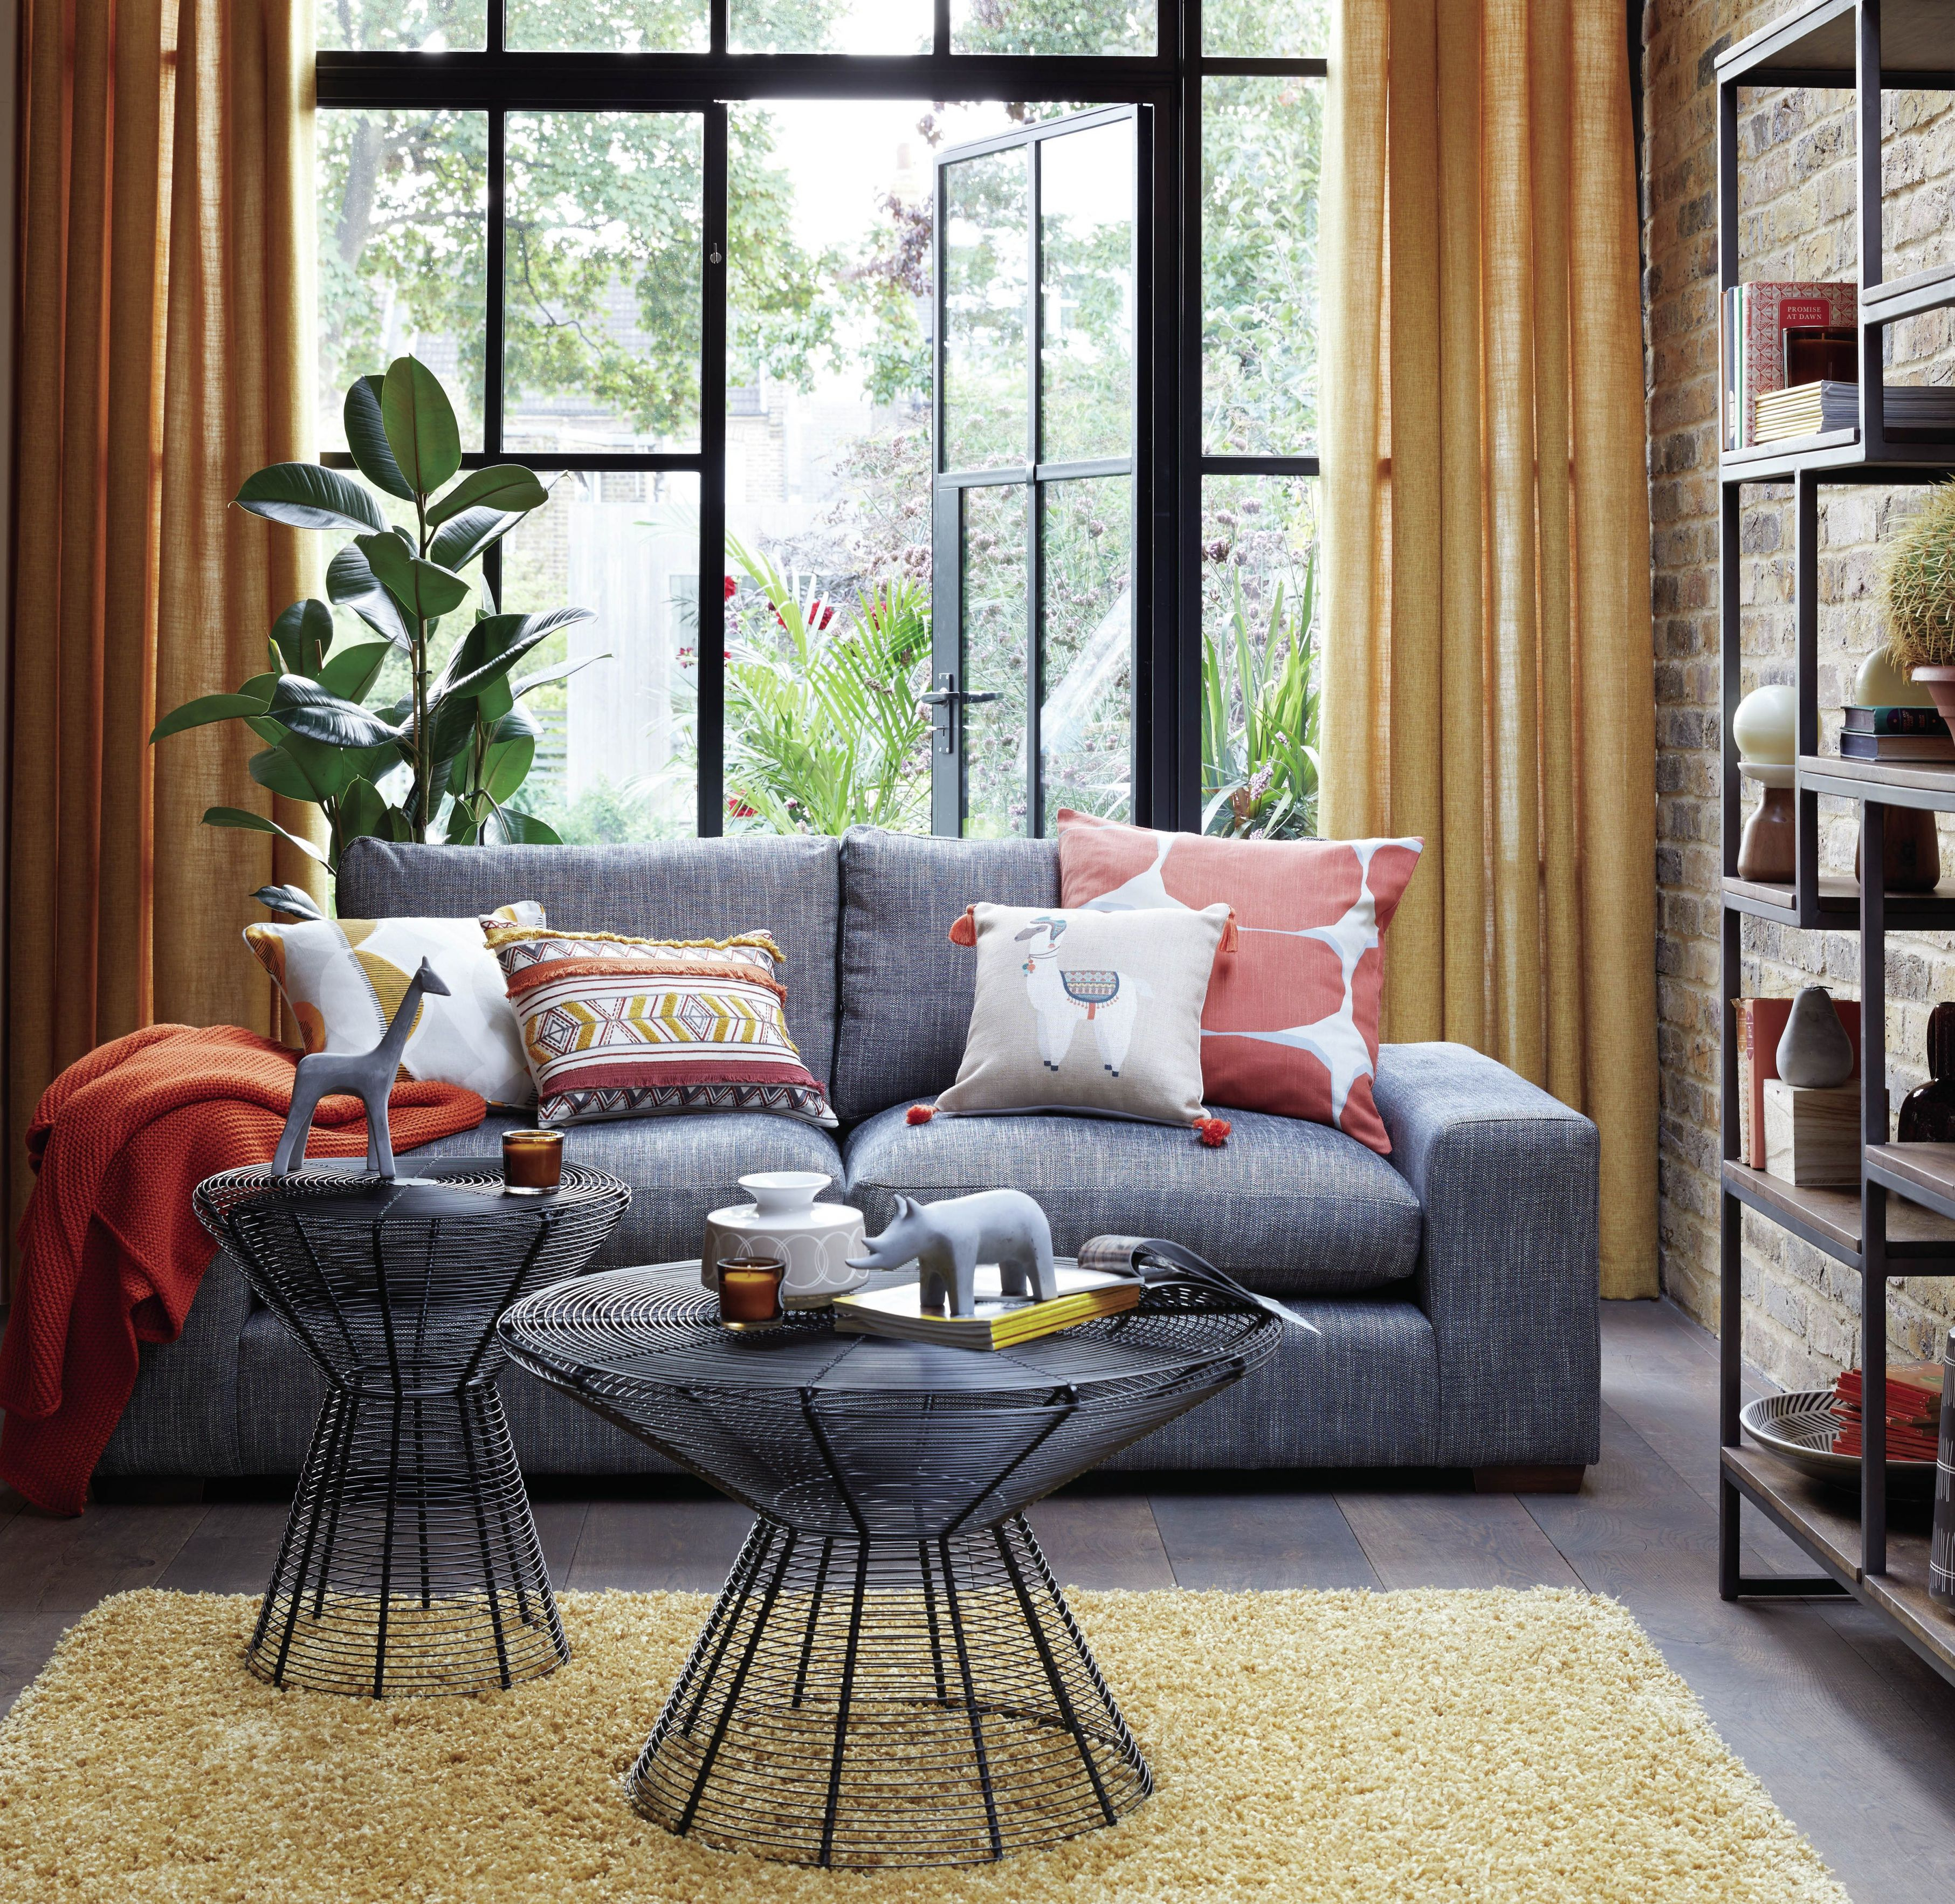 5 Design Tricks For Small Living Rooms - Layout Ideas with regard to Unique Small Living Room Furniture